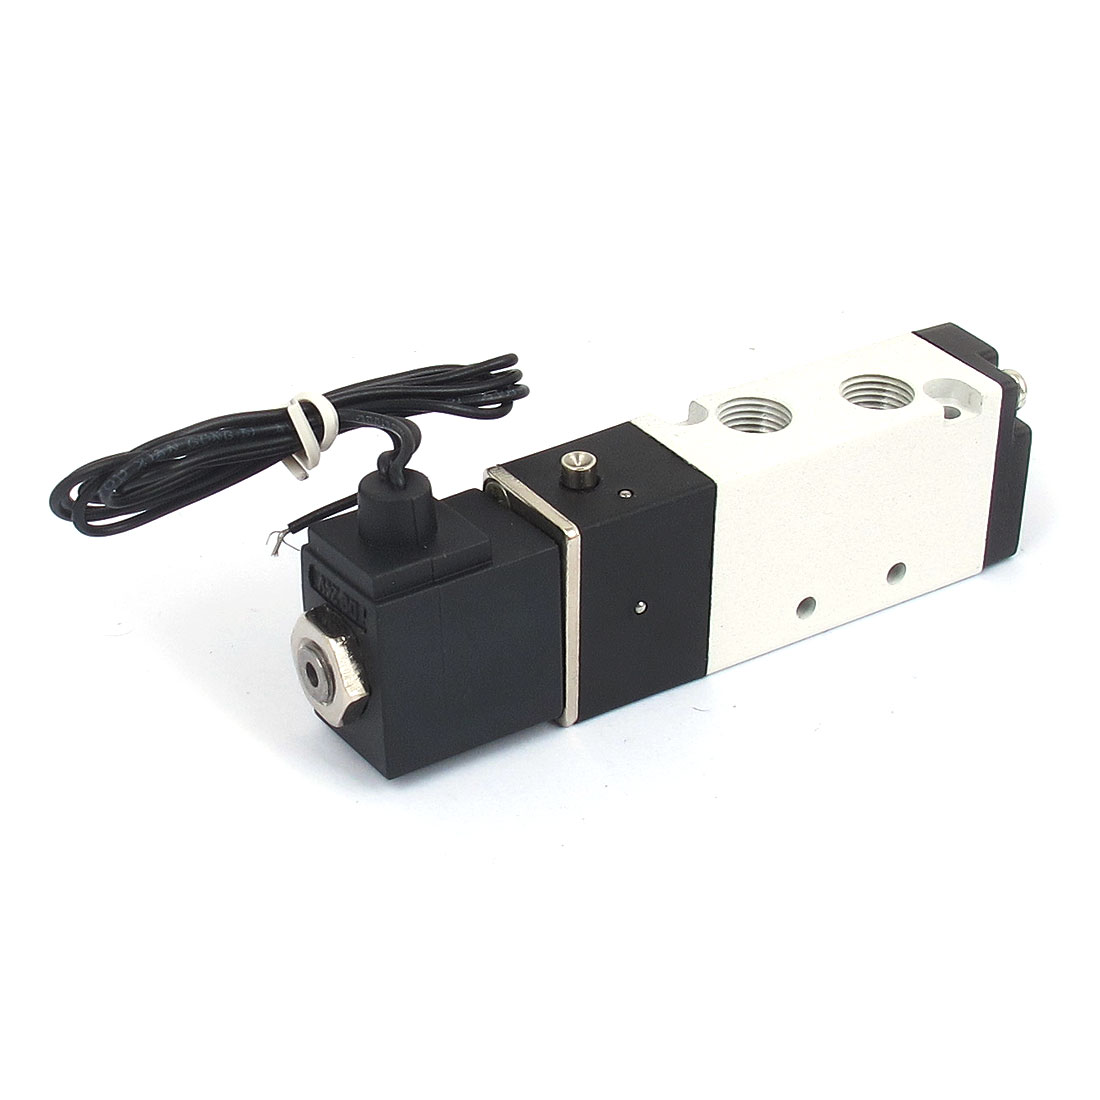 DC 24V 2 Position 1/8BSP Thread Pneumatic Control Air Solenoid Valve